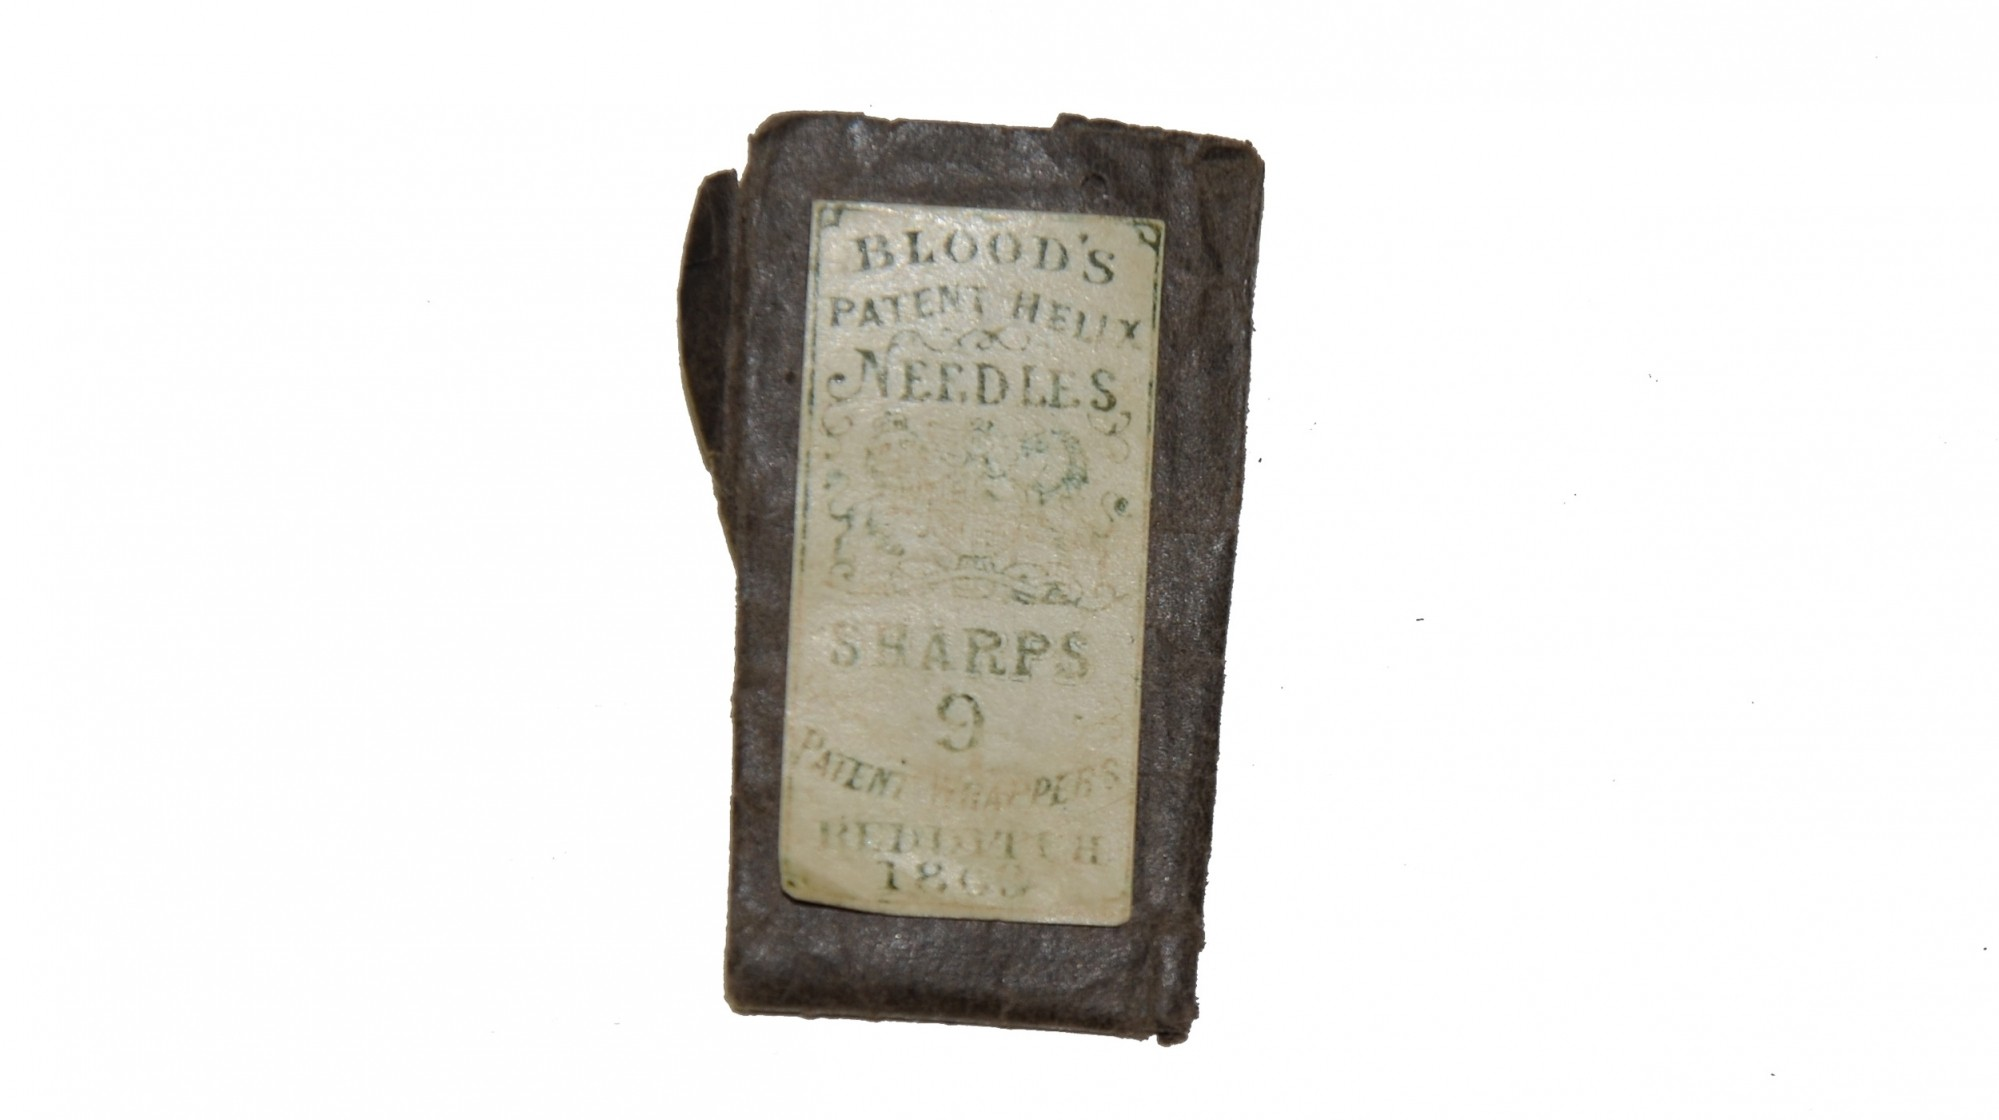 PACKET OF SEWING NEEDLES, DATED 1863